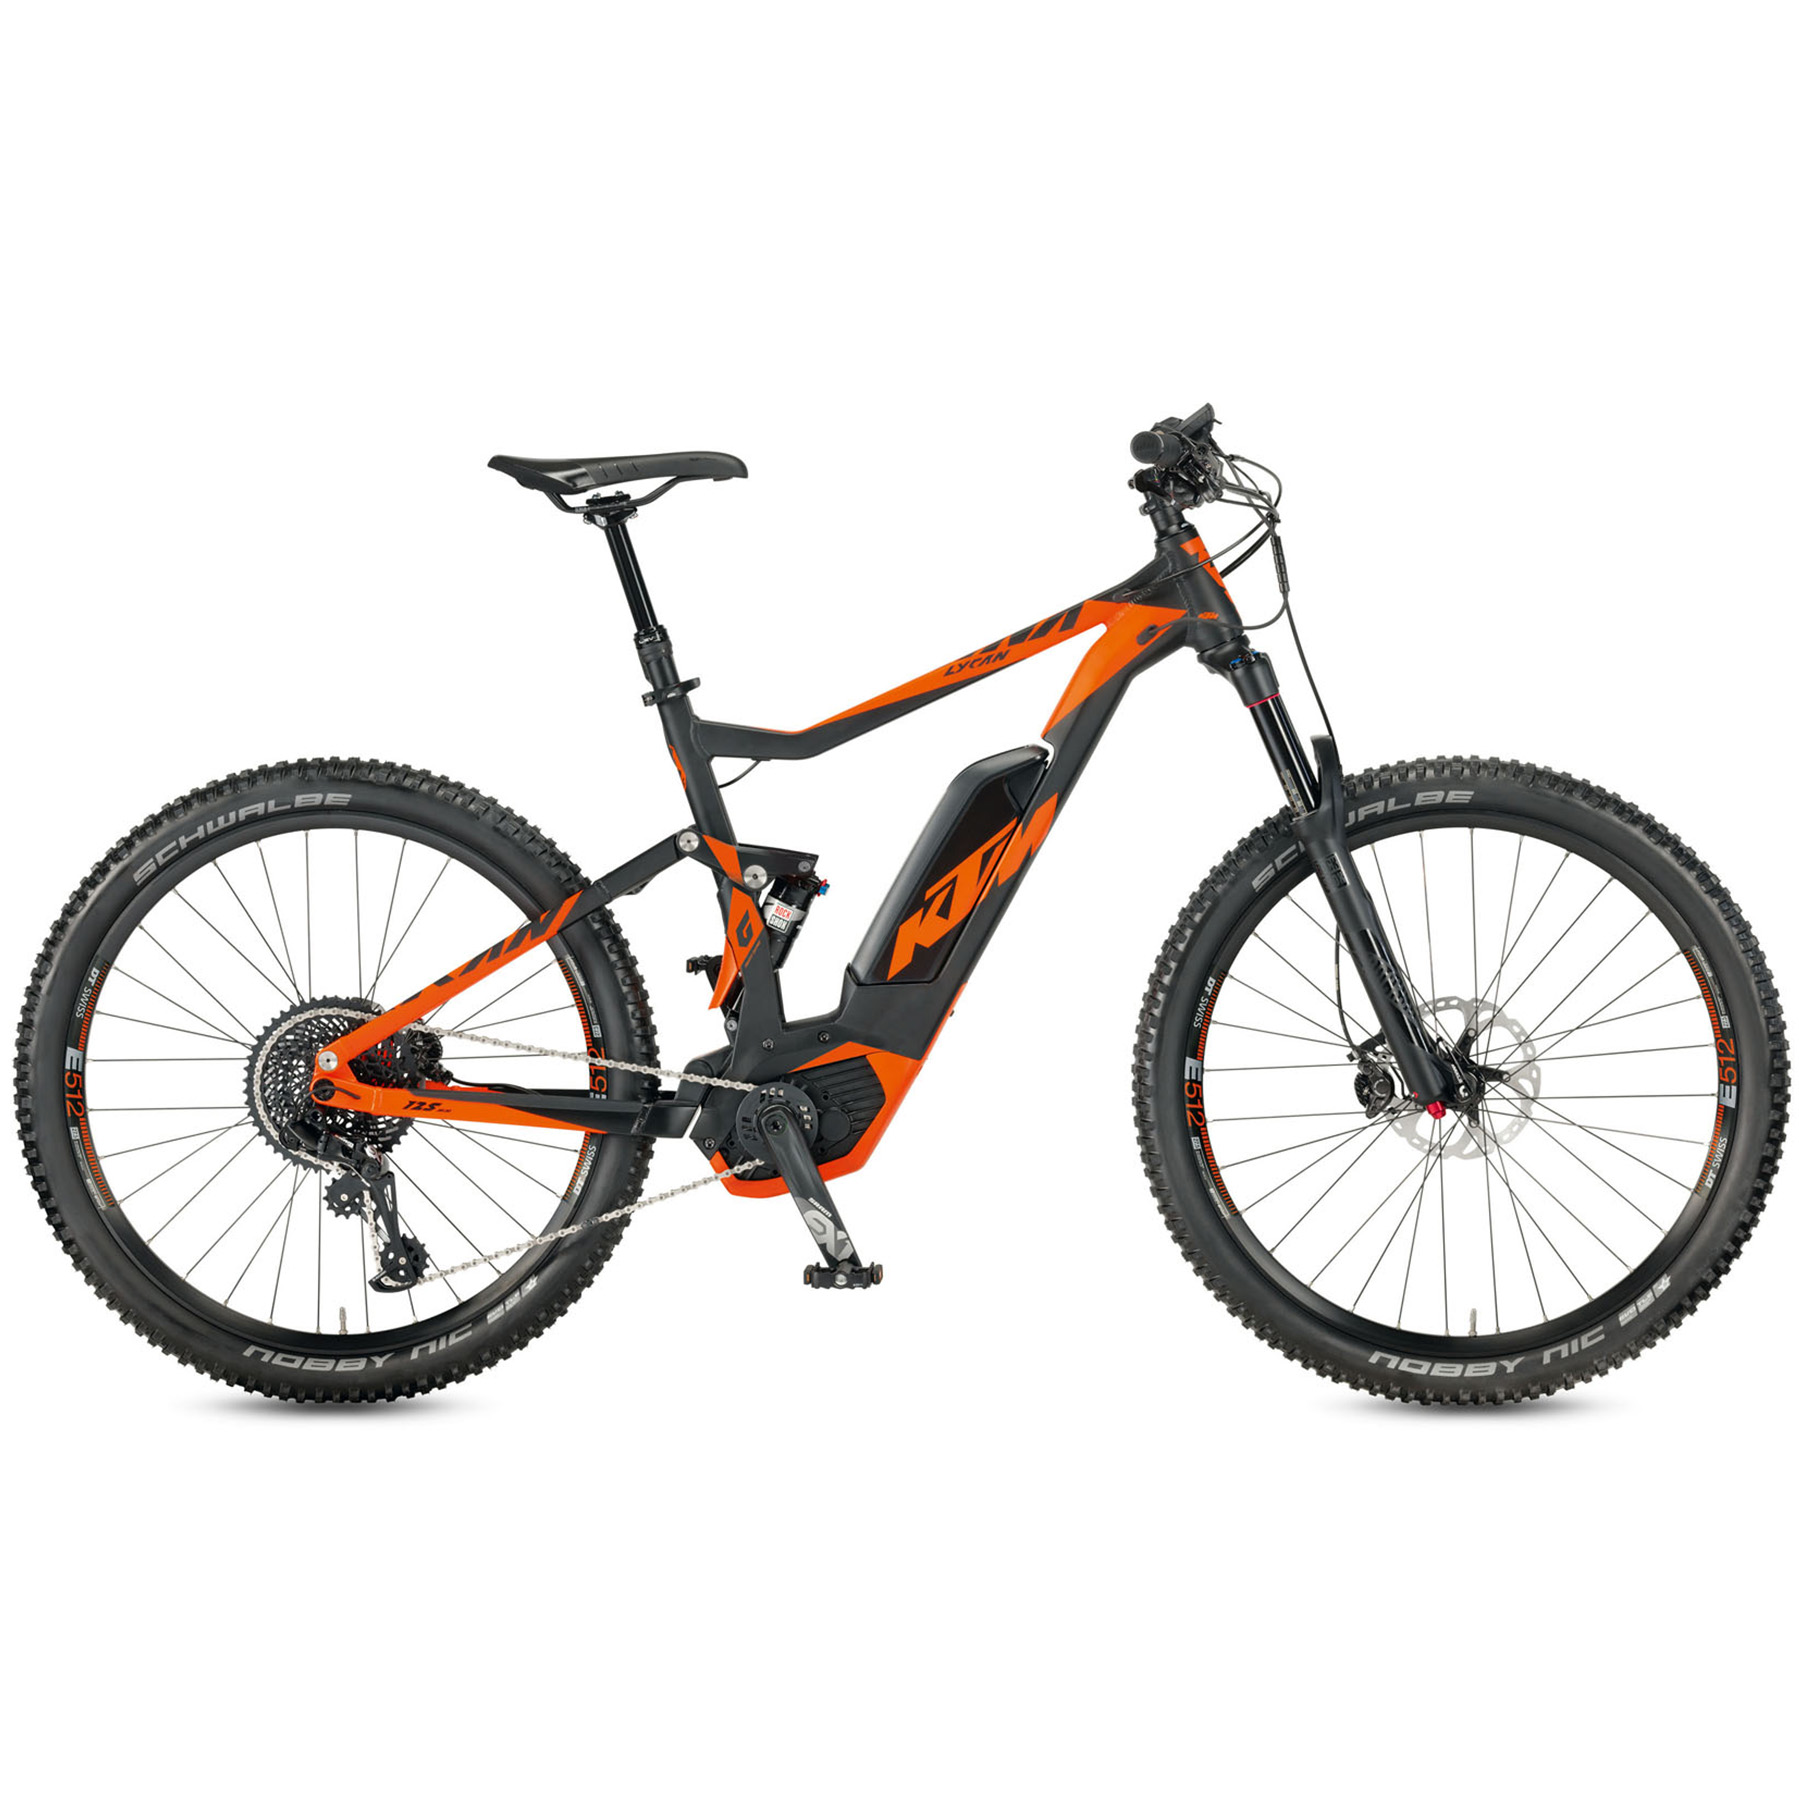 1de028b497a408 KTM Macina Lycan 271 Bosch E-Bike Mountain Bike – 2017